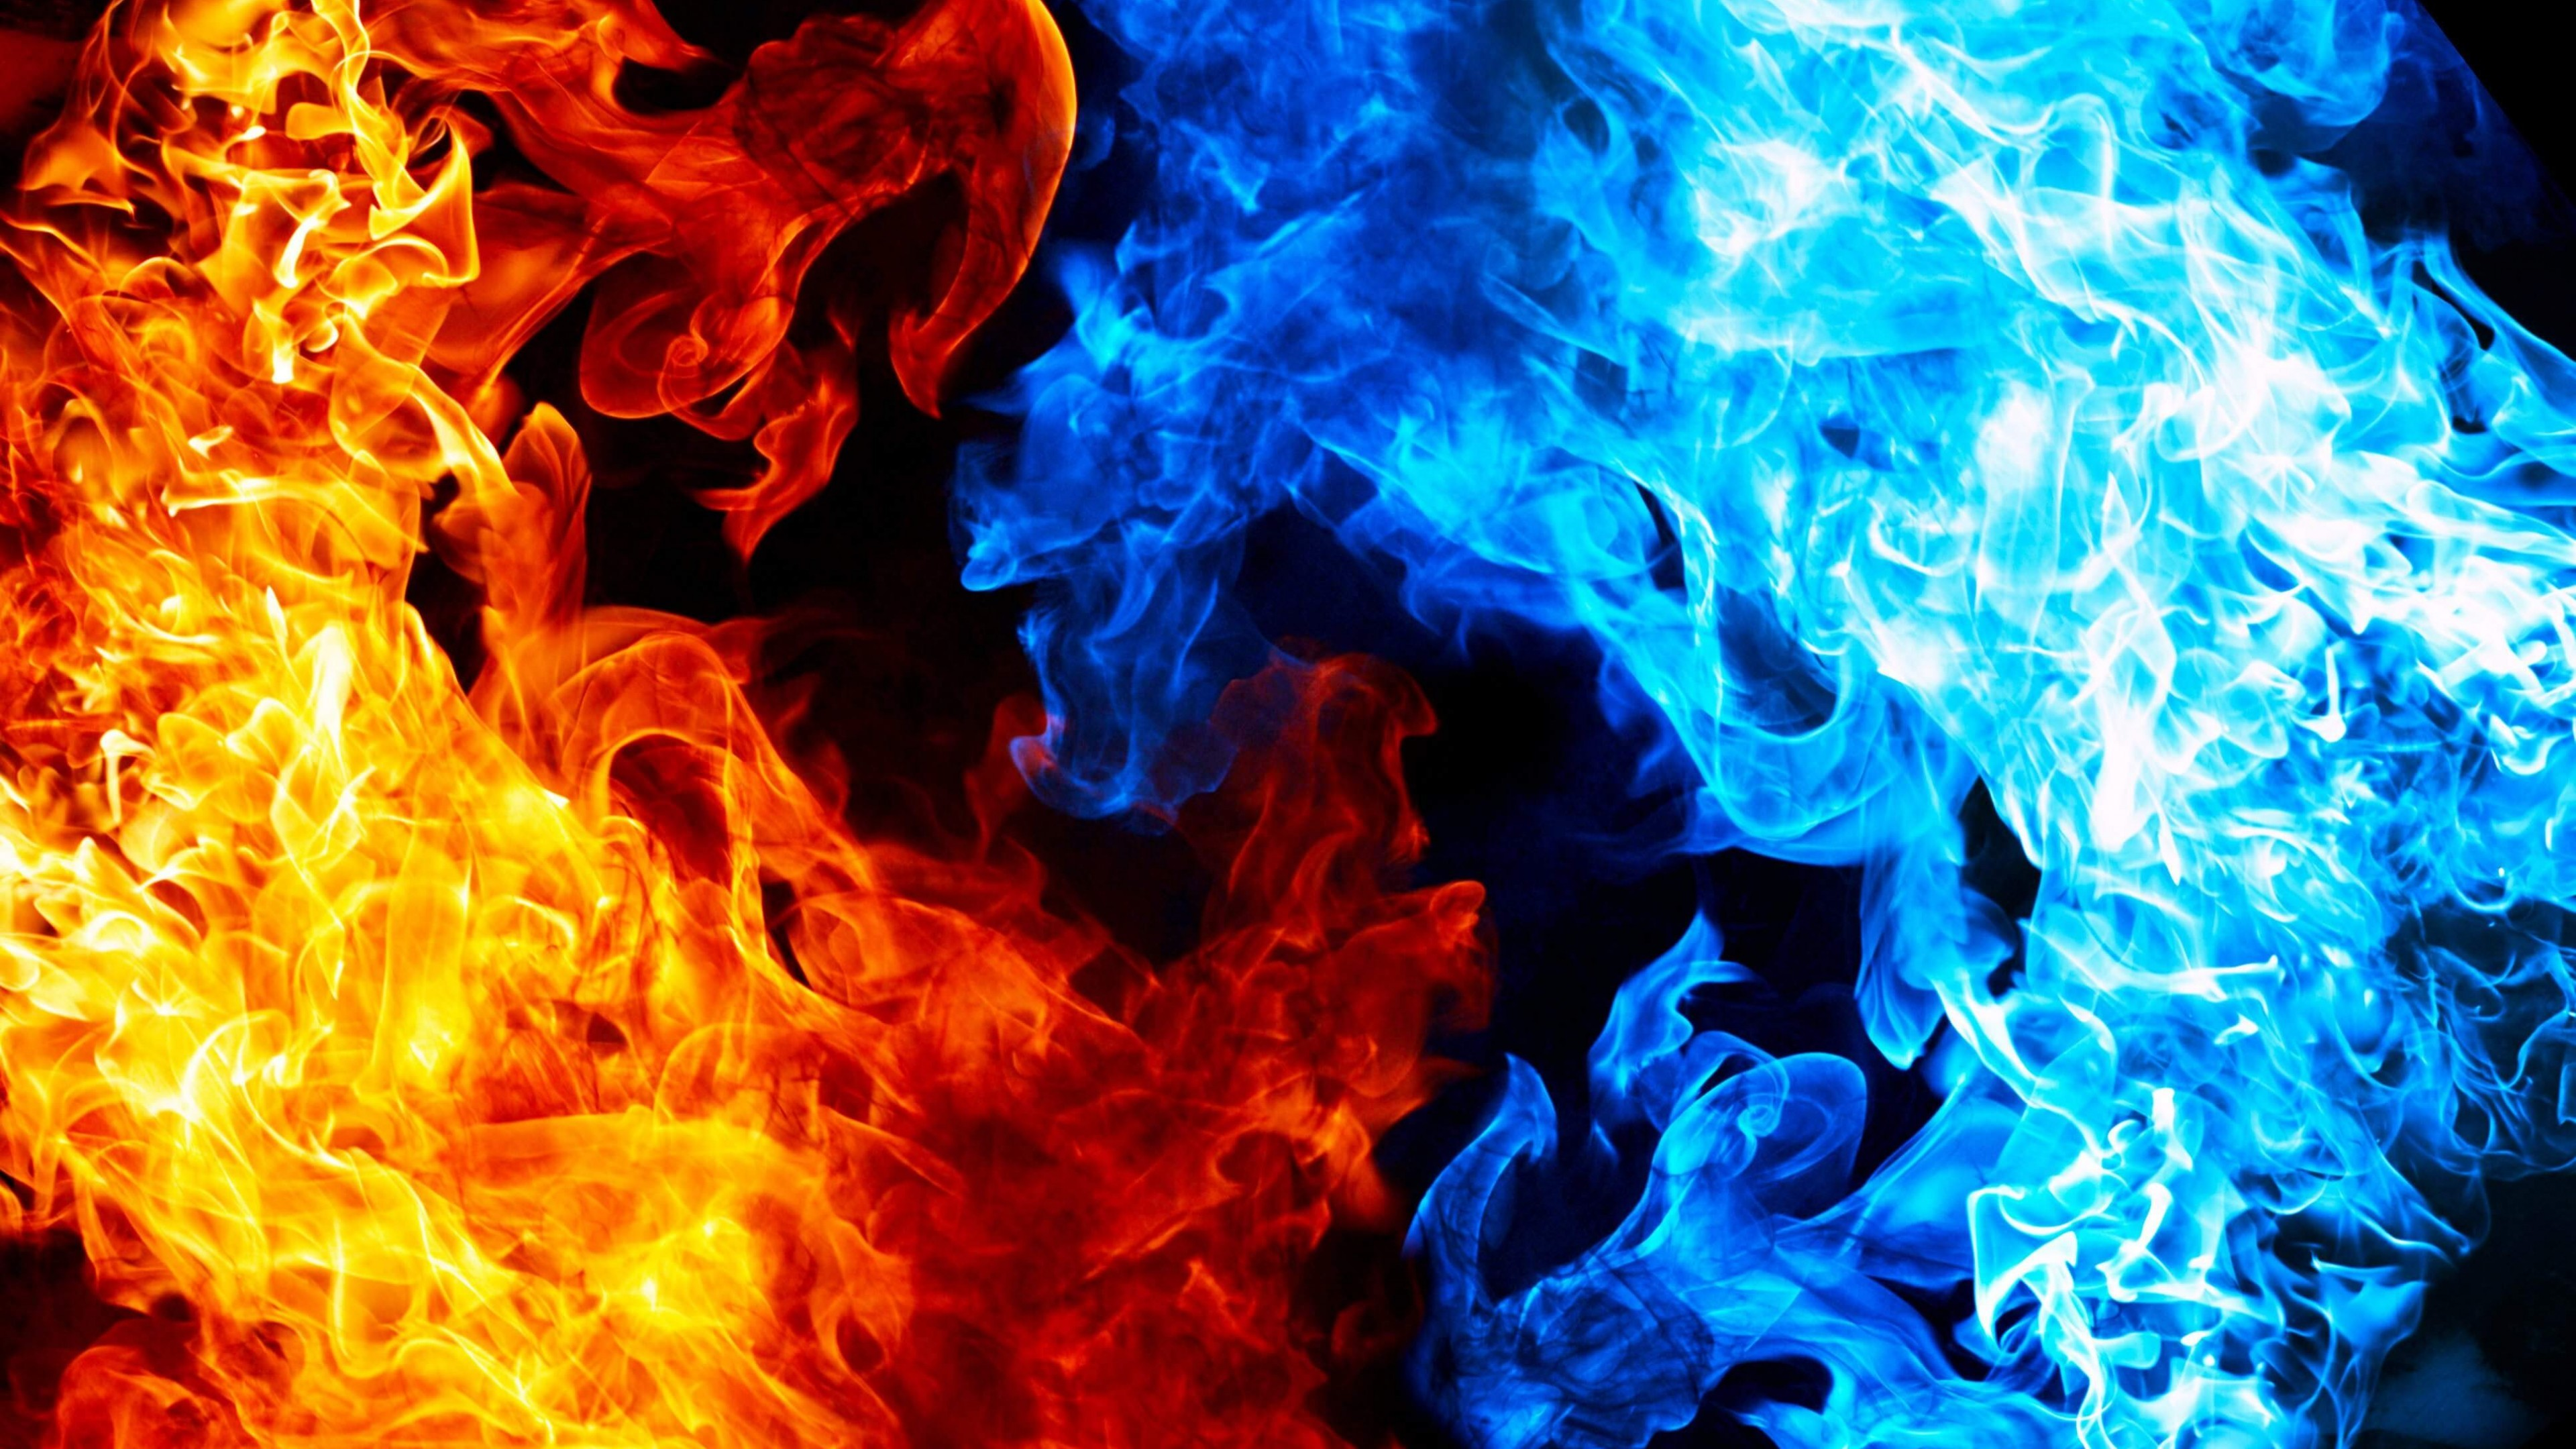 Res: 3840x2160, Fire Wallpapers 15 - 3840 X 2160